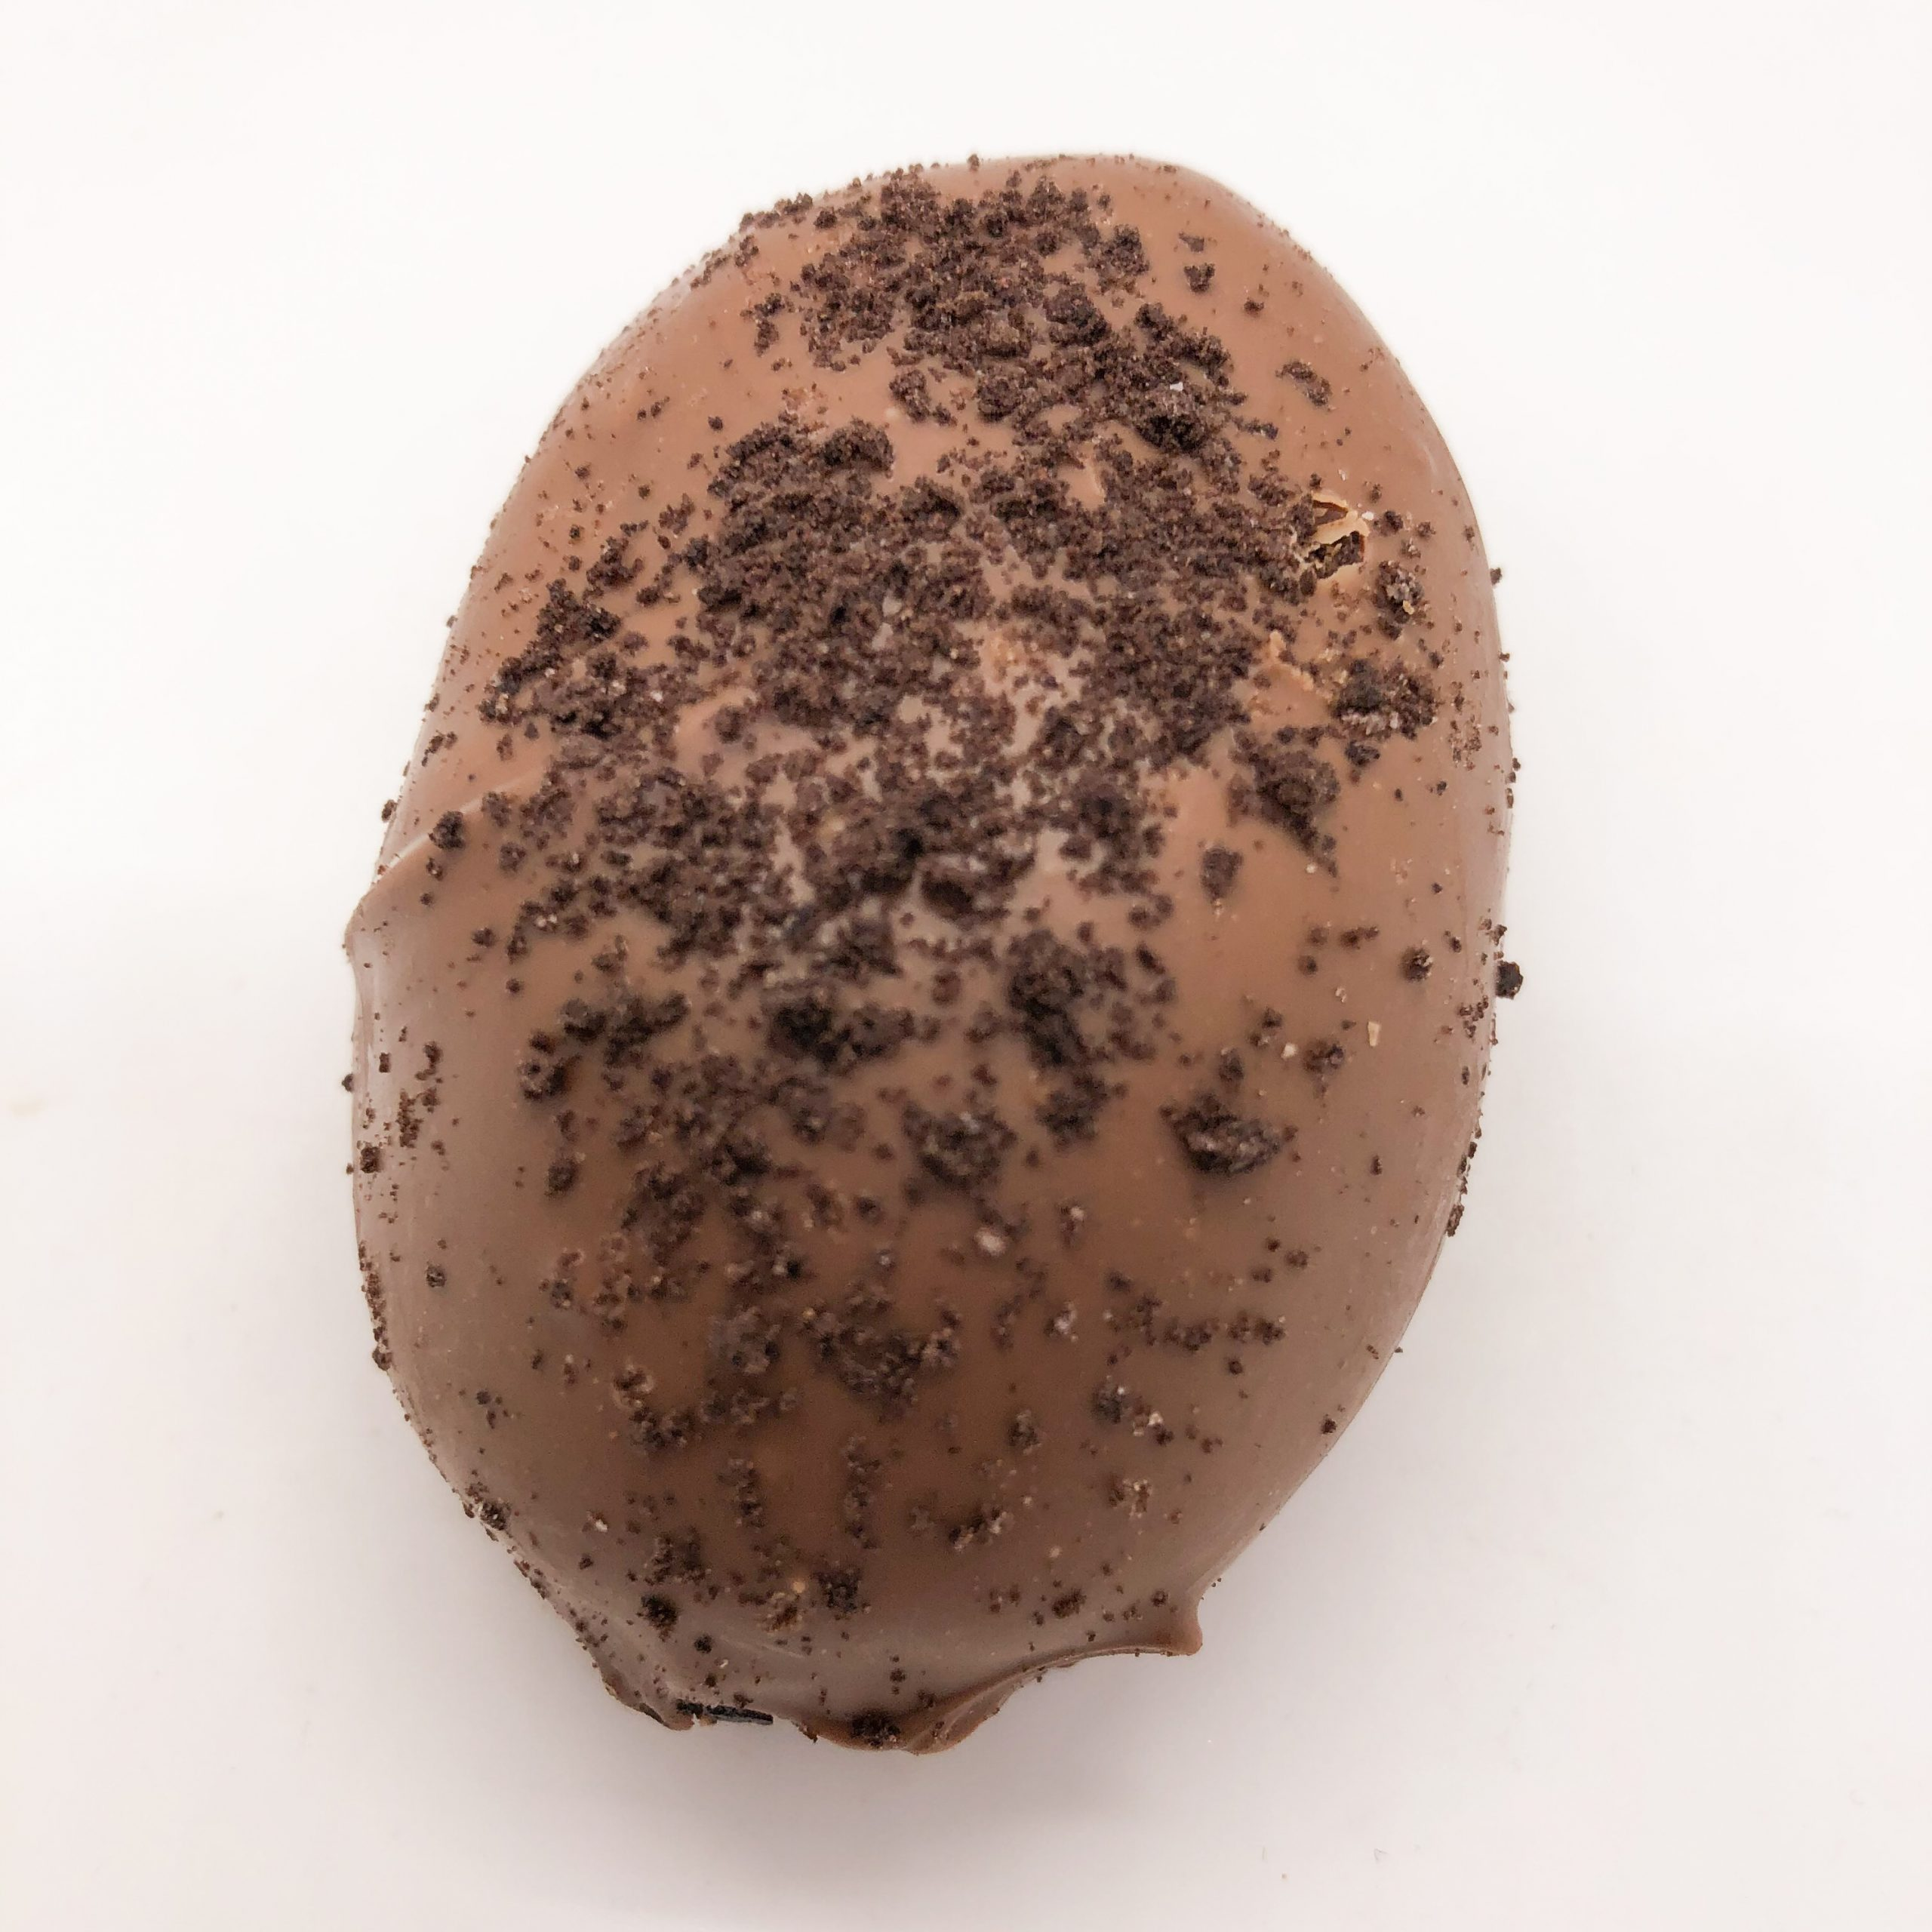 milk chocolate oreo easter egg for sale indiana scaled